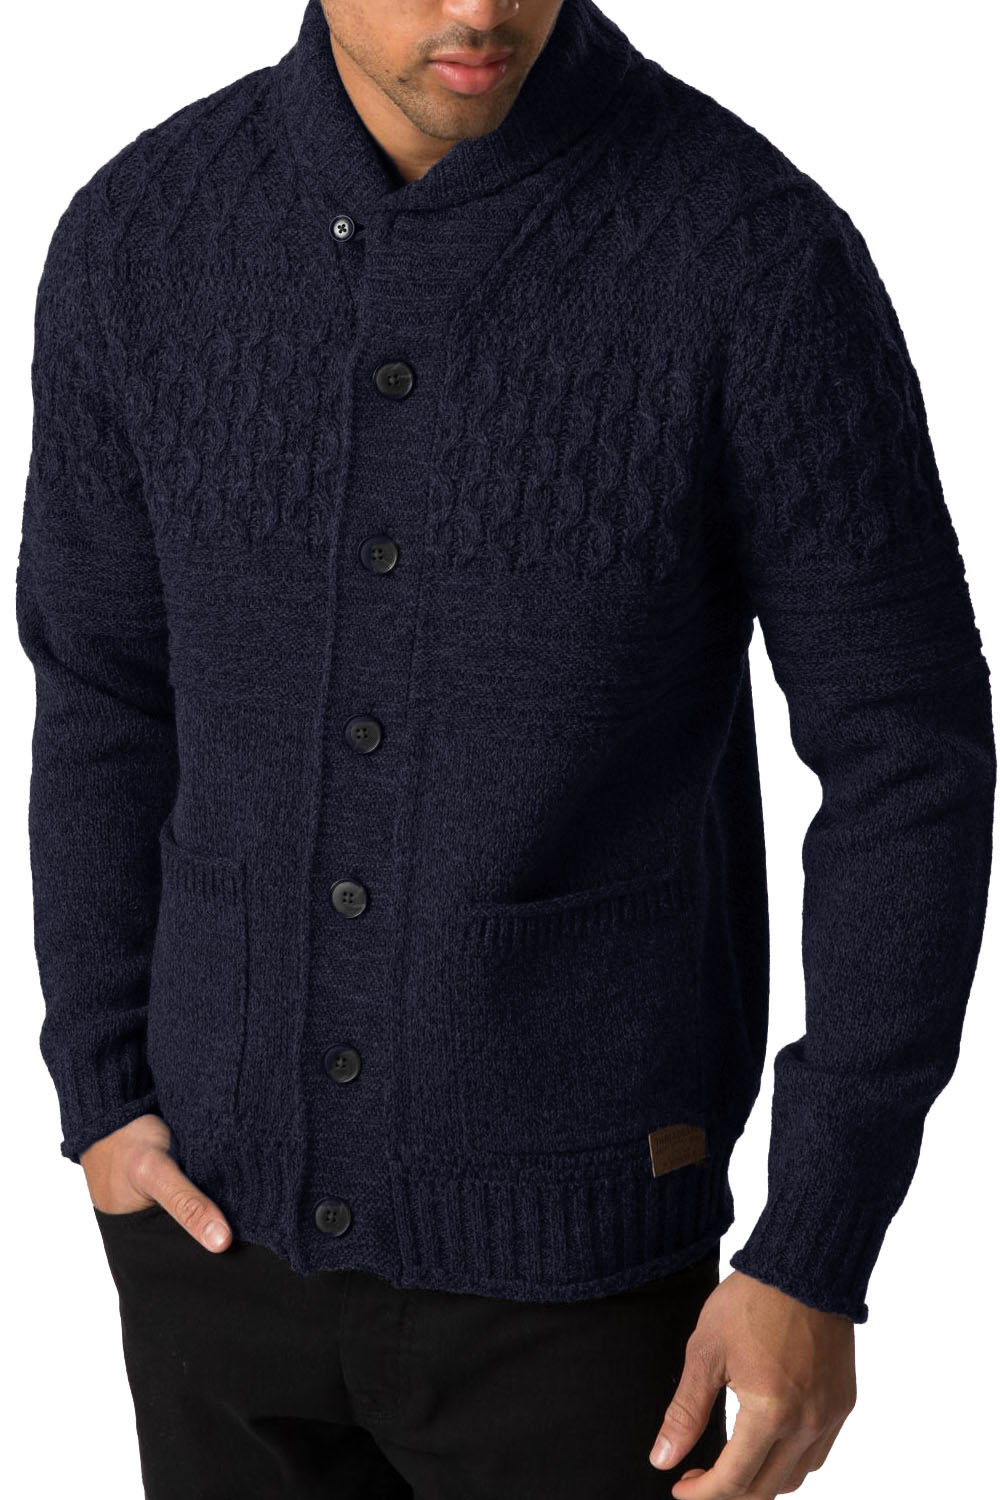 Shop for men's cardigan & cardigan sweaters. See the latest styles, colors & brands of cardigan sweaters from Men's Wearhouse.